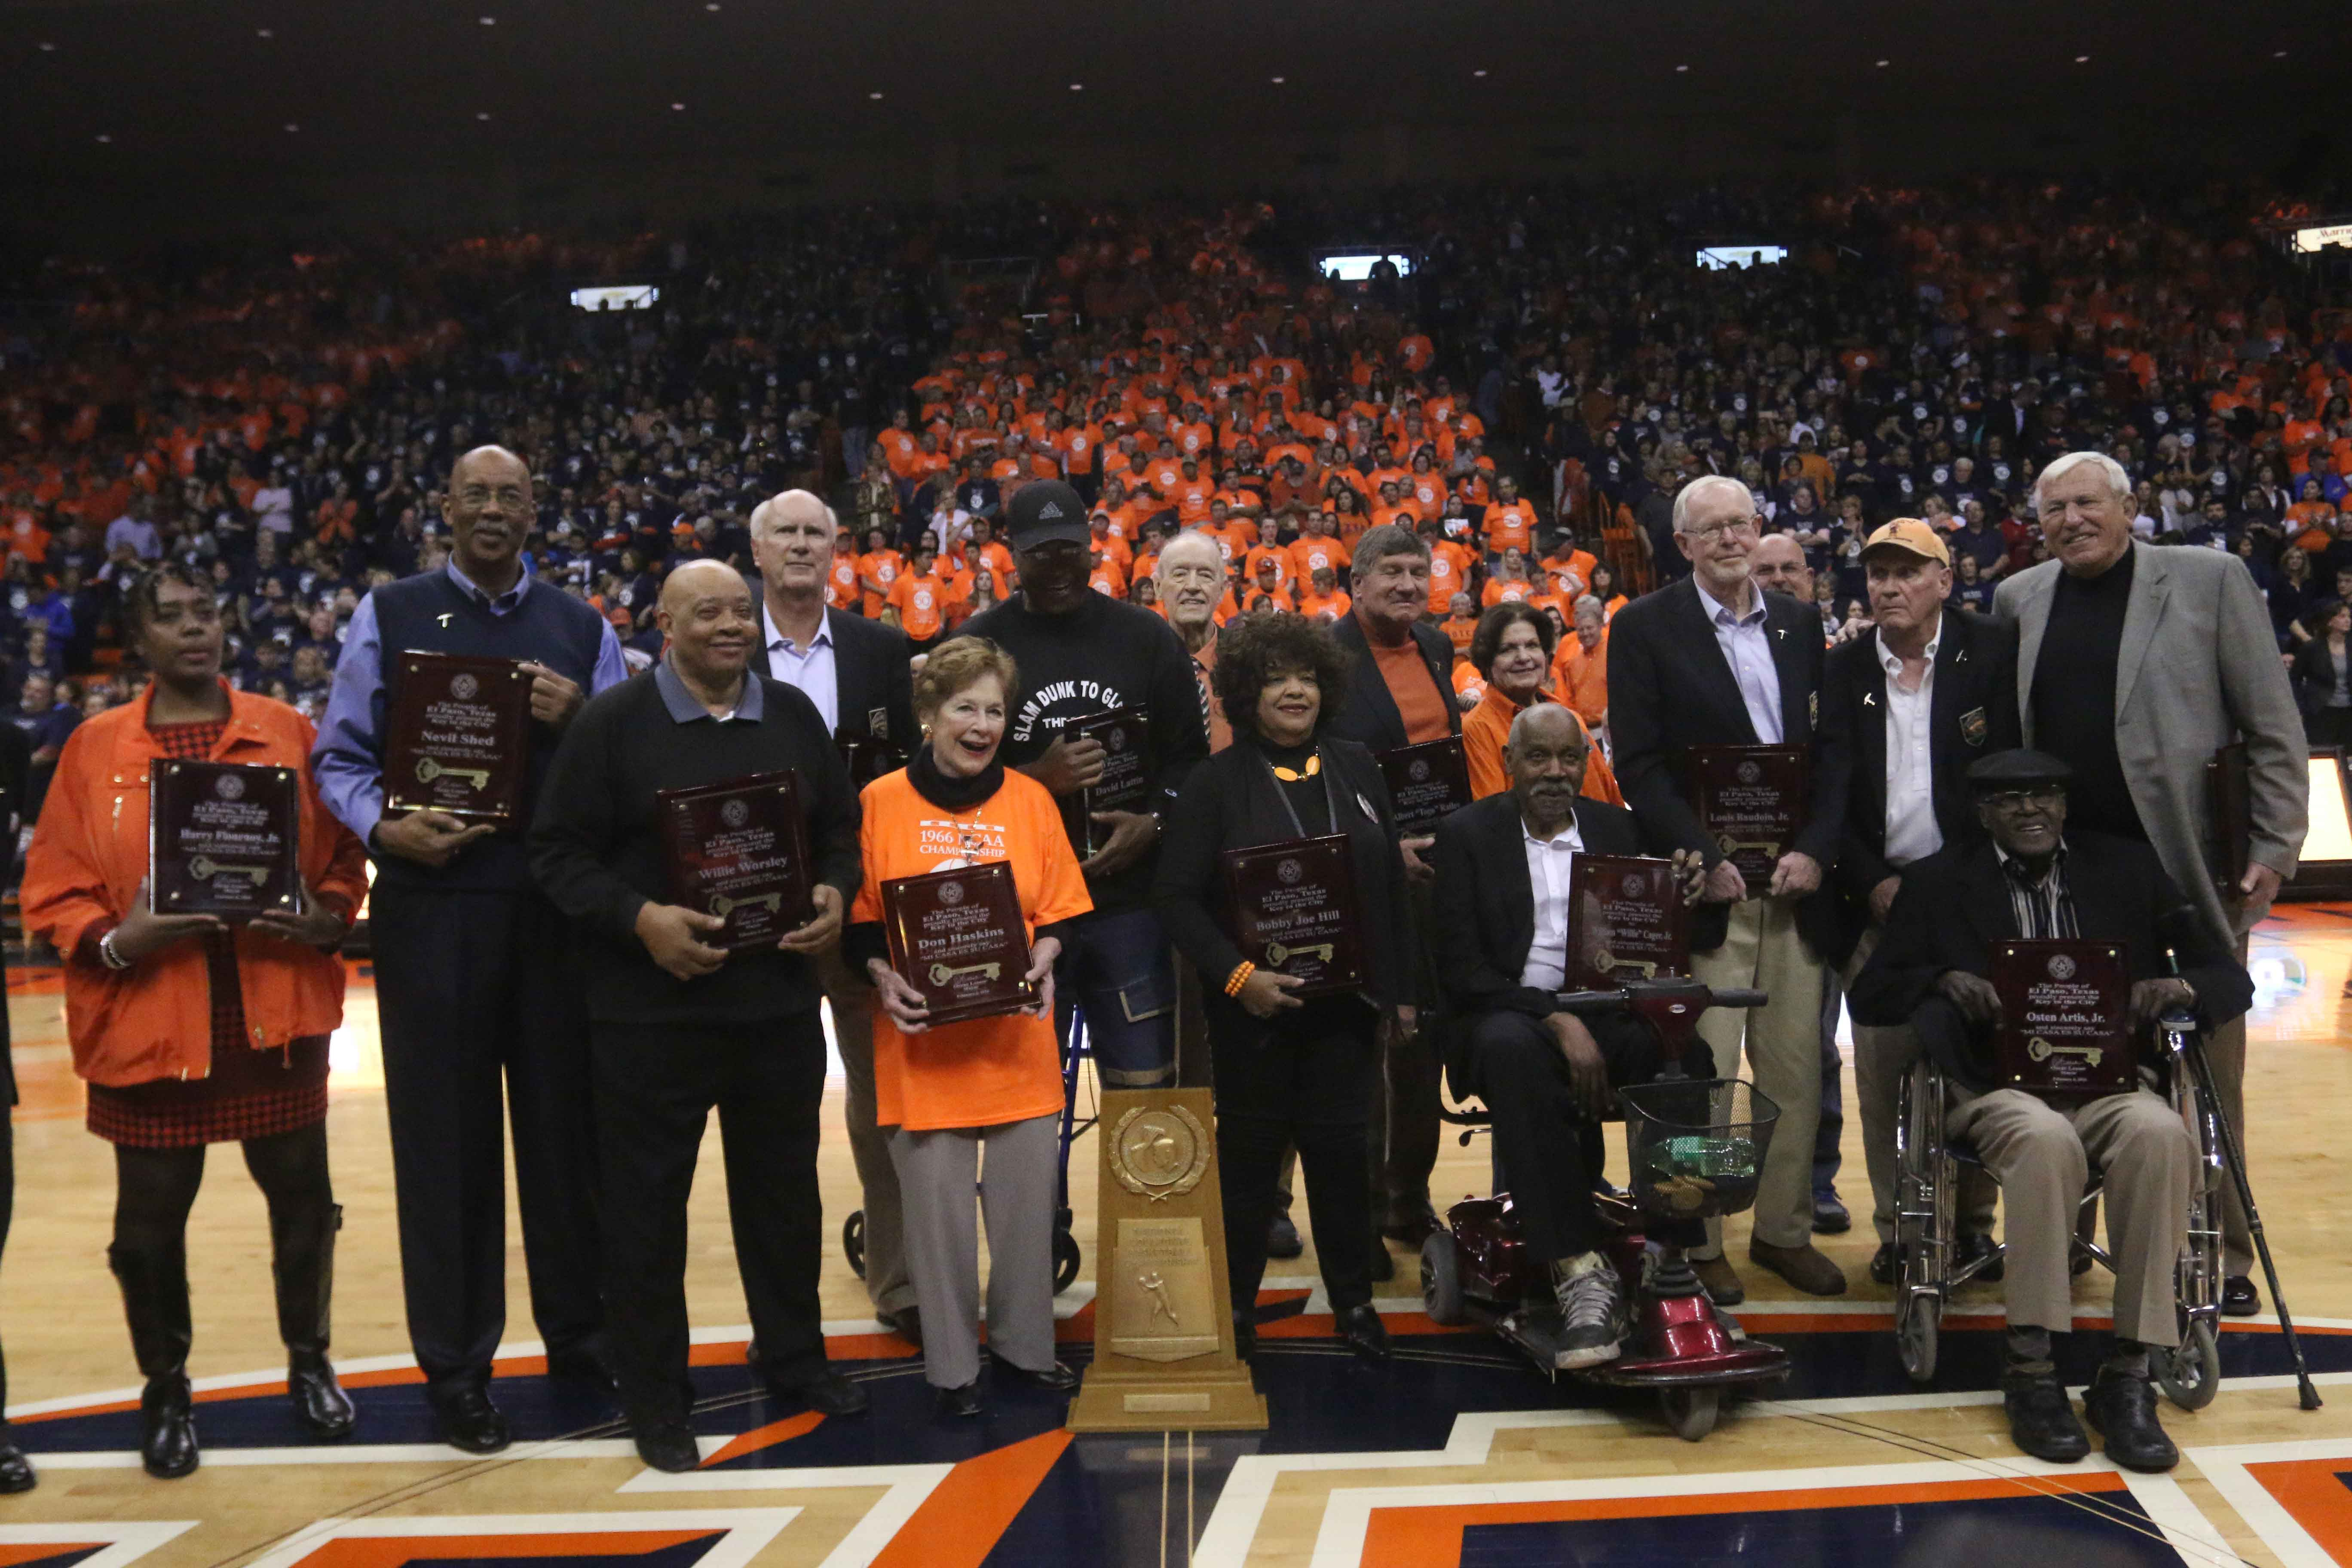 Members of the 1966 basketball team and family members gather at the Don Haskins Center.